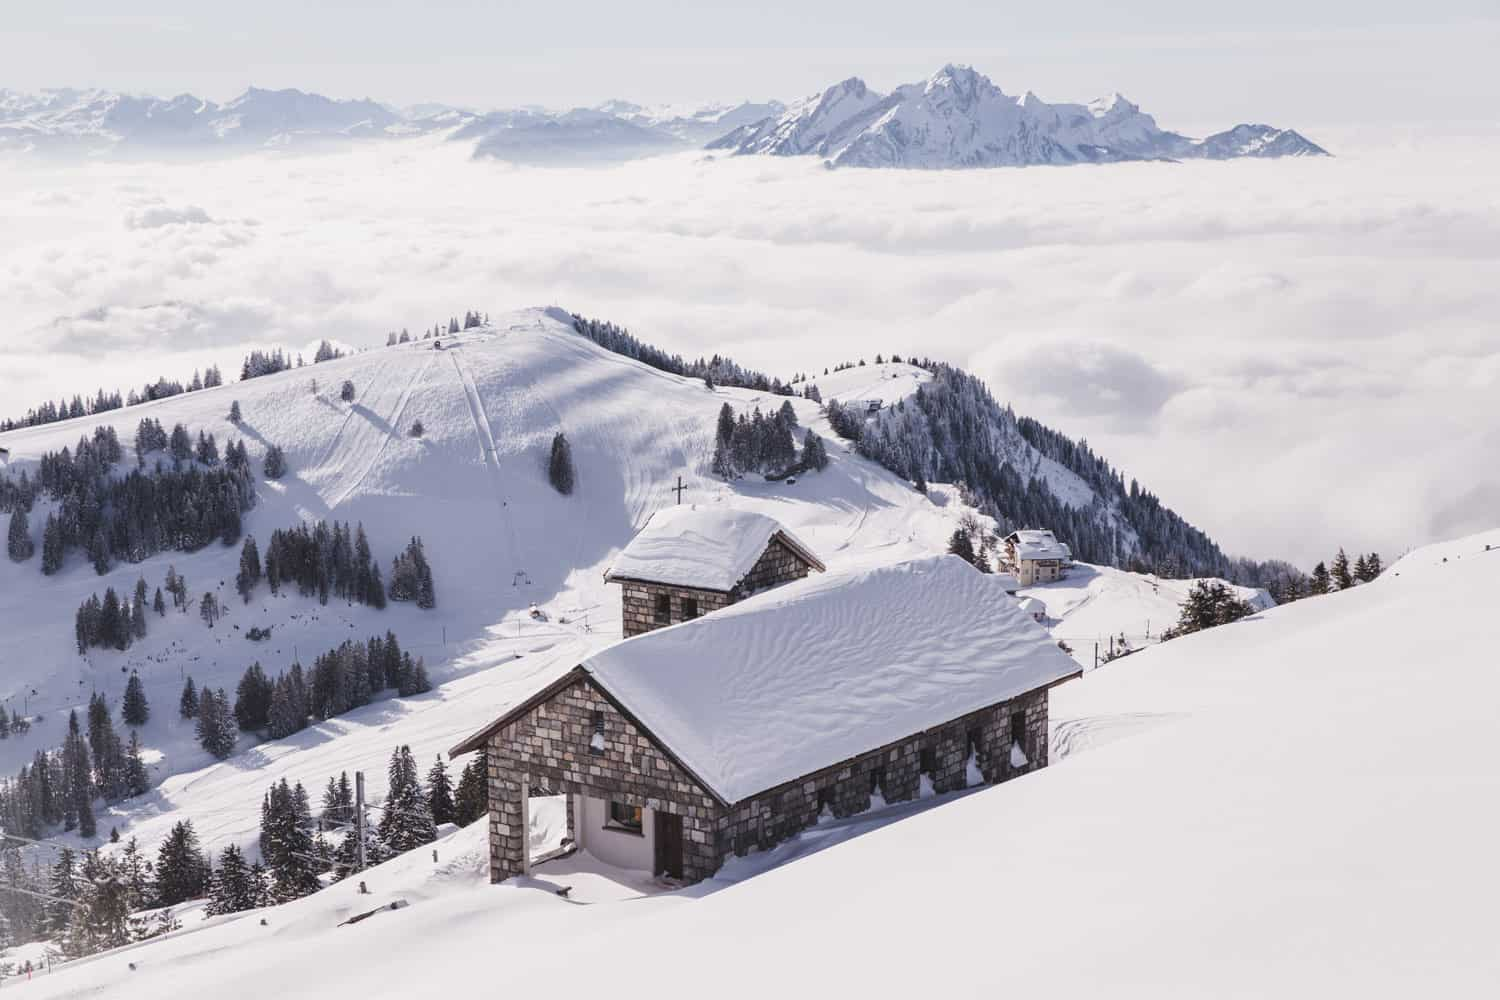 The view from Mount Rigi in Switzerland in the snow in winter. Rigi is a great destination to add to your travel list for 2020! Rigi in February.